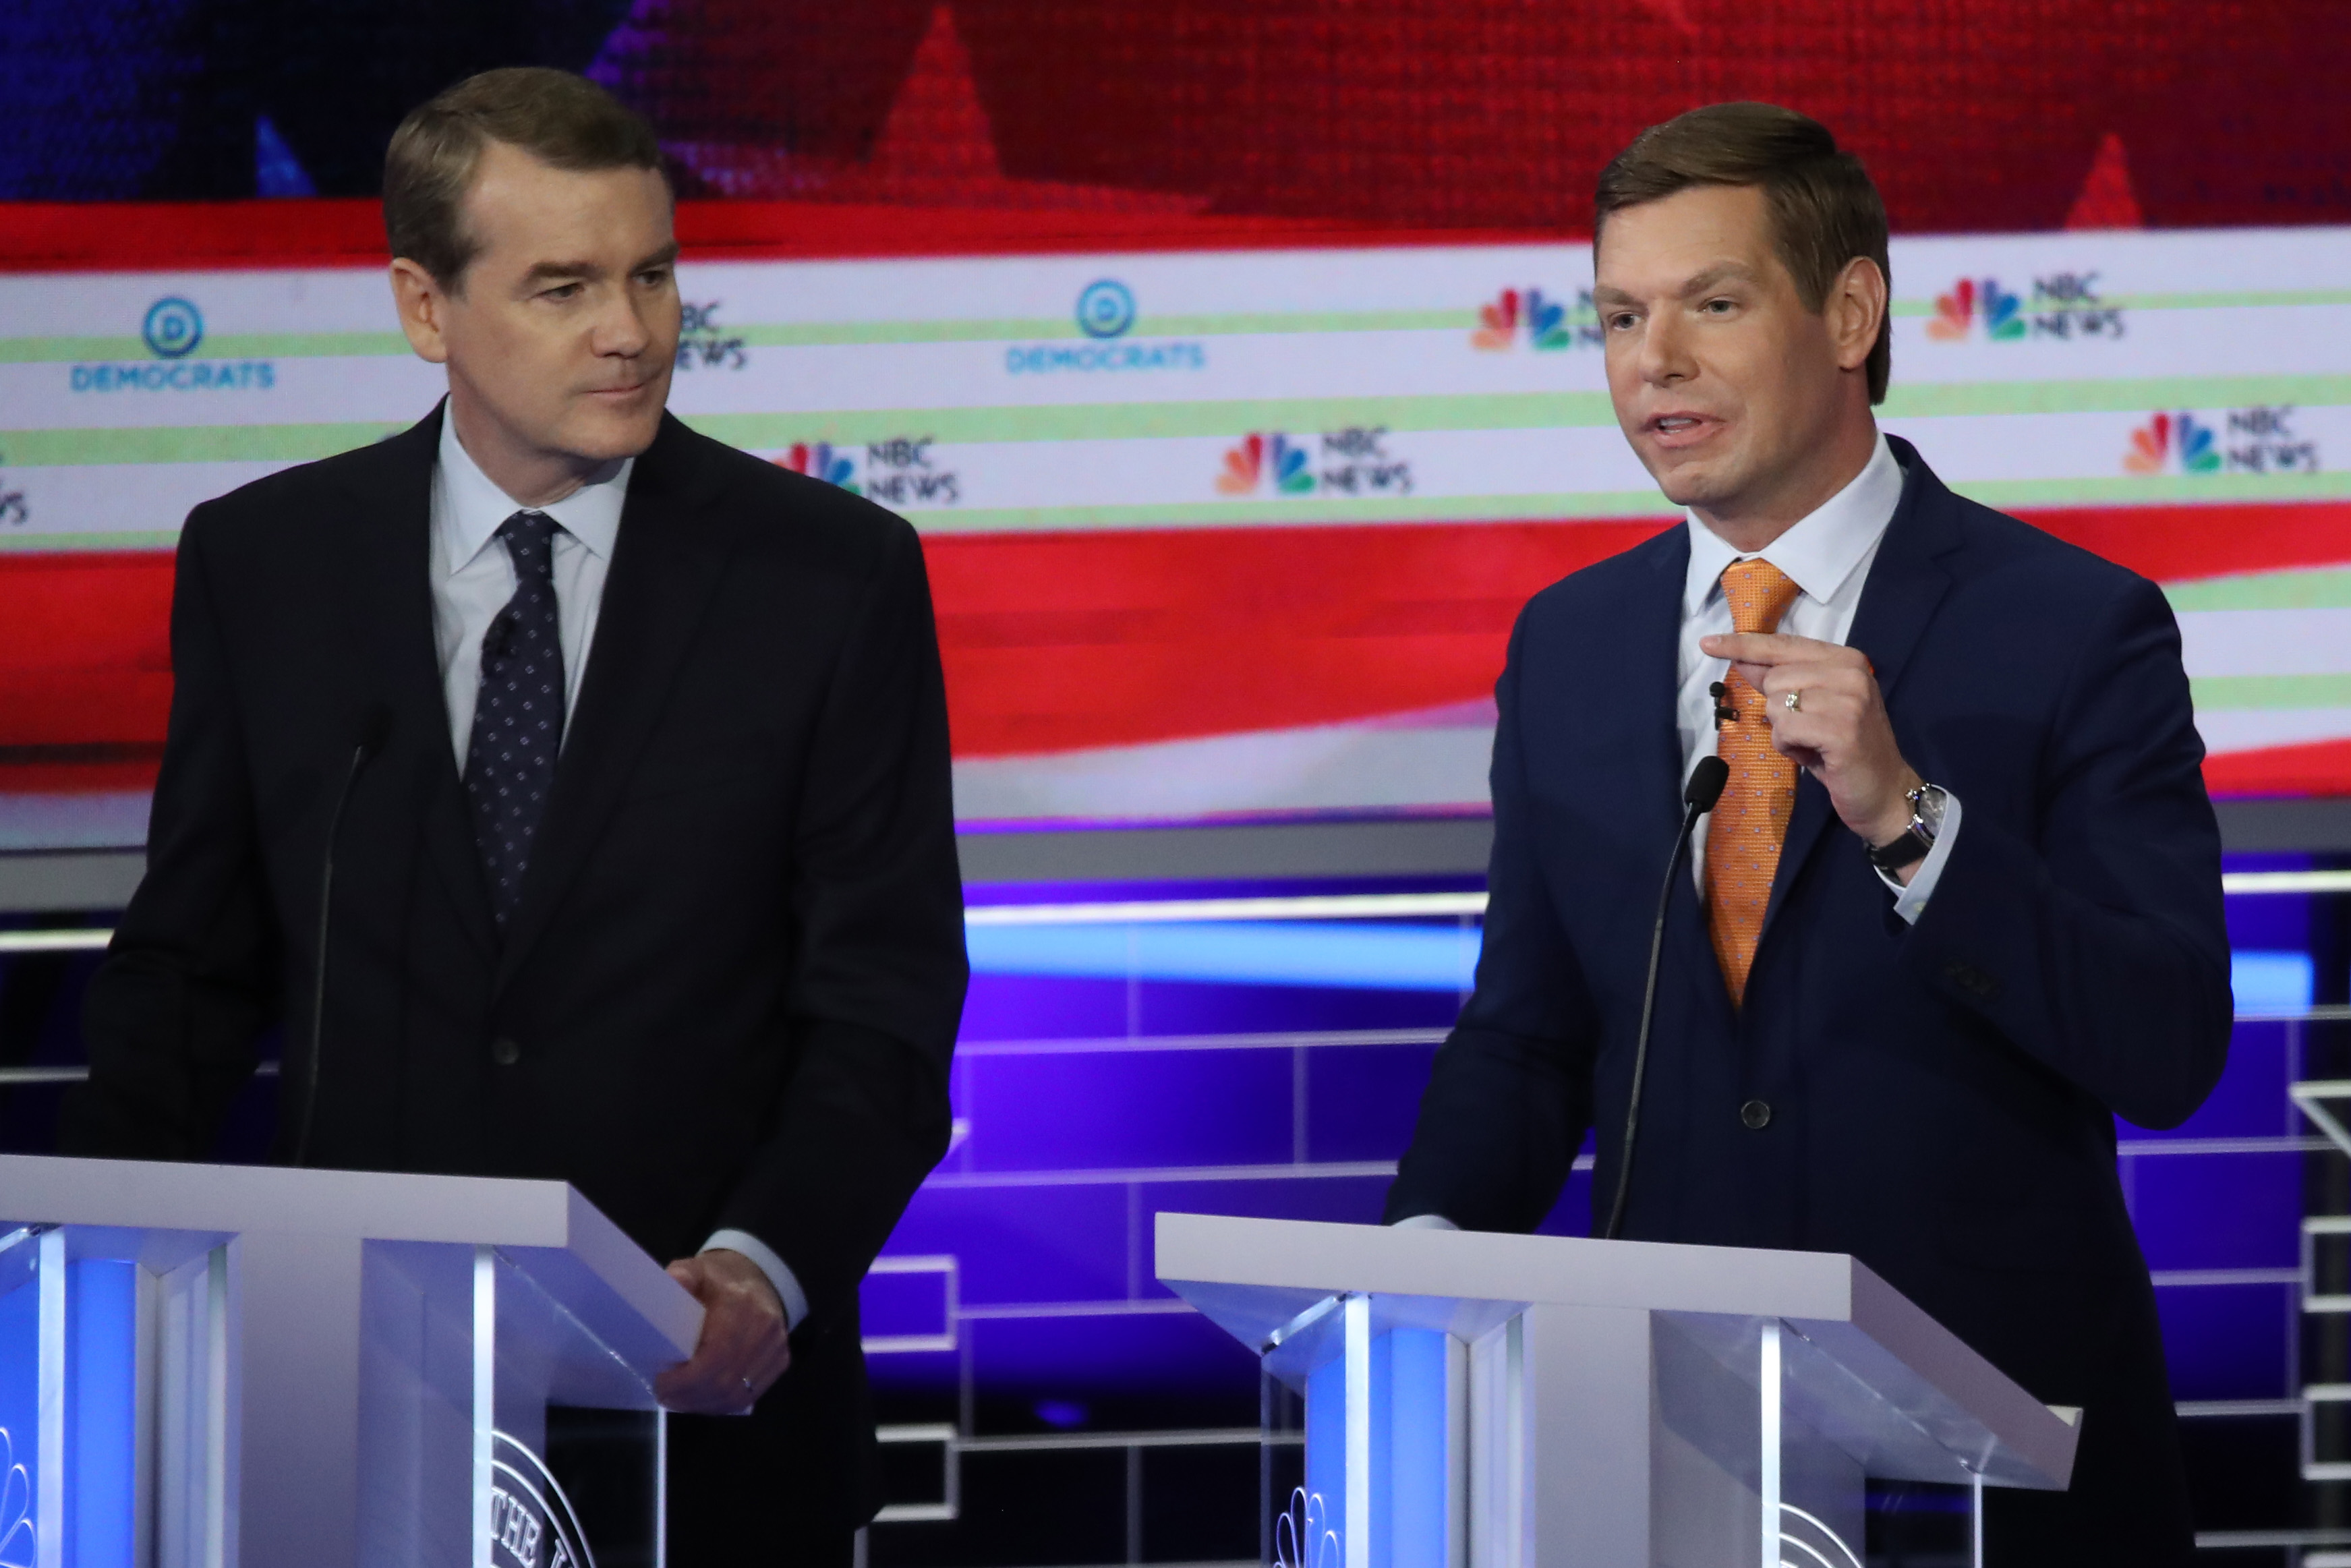 Rep. Eric Swalwell (D-CA) speaks as Sen. Michael Bennet (D-CO) looks on during the second night of the first Democratic presidential debate on June 27, 2019 in Miami, Florida.